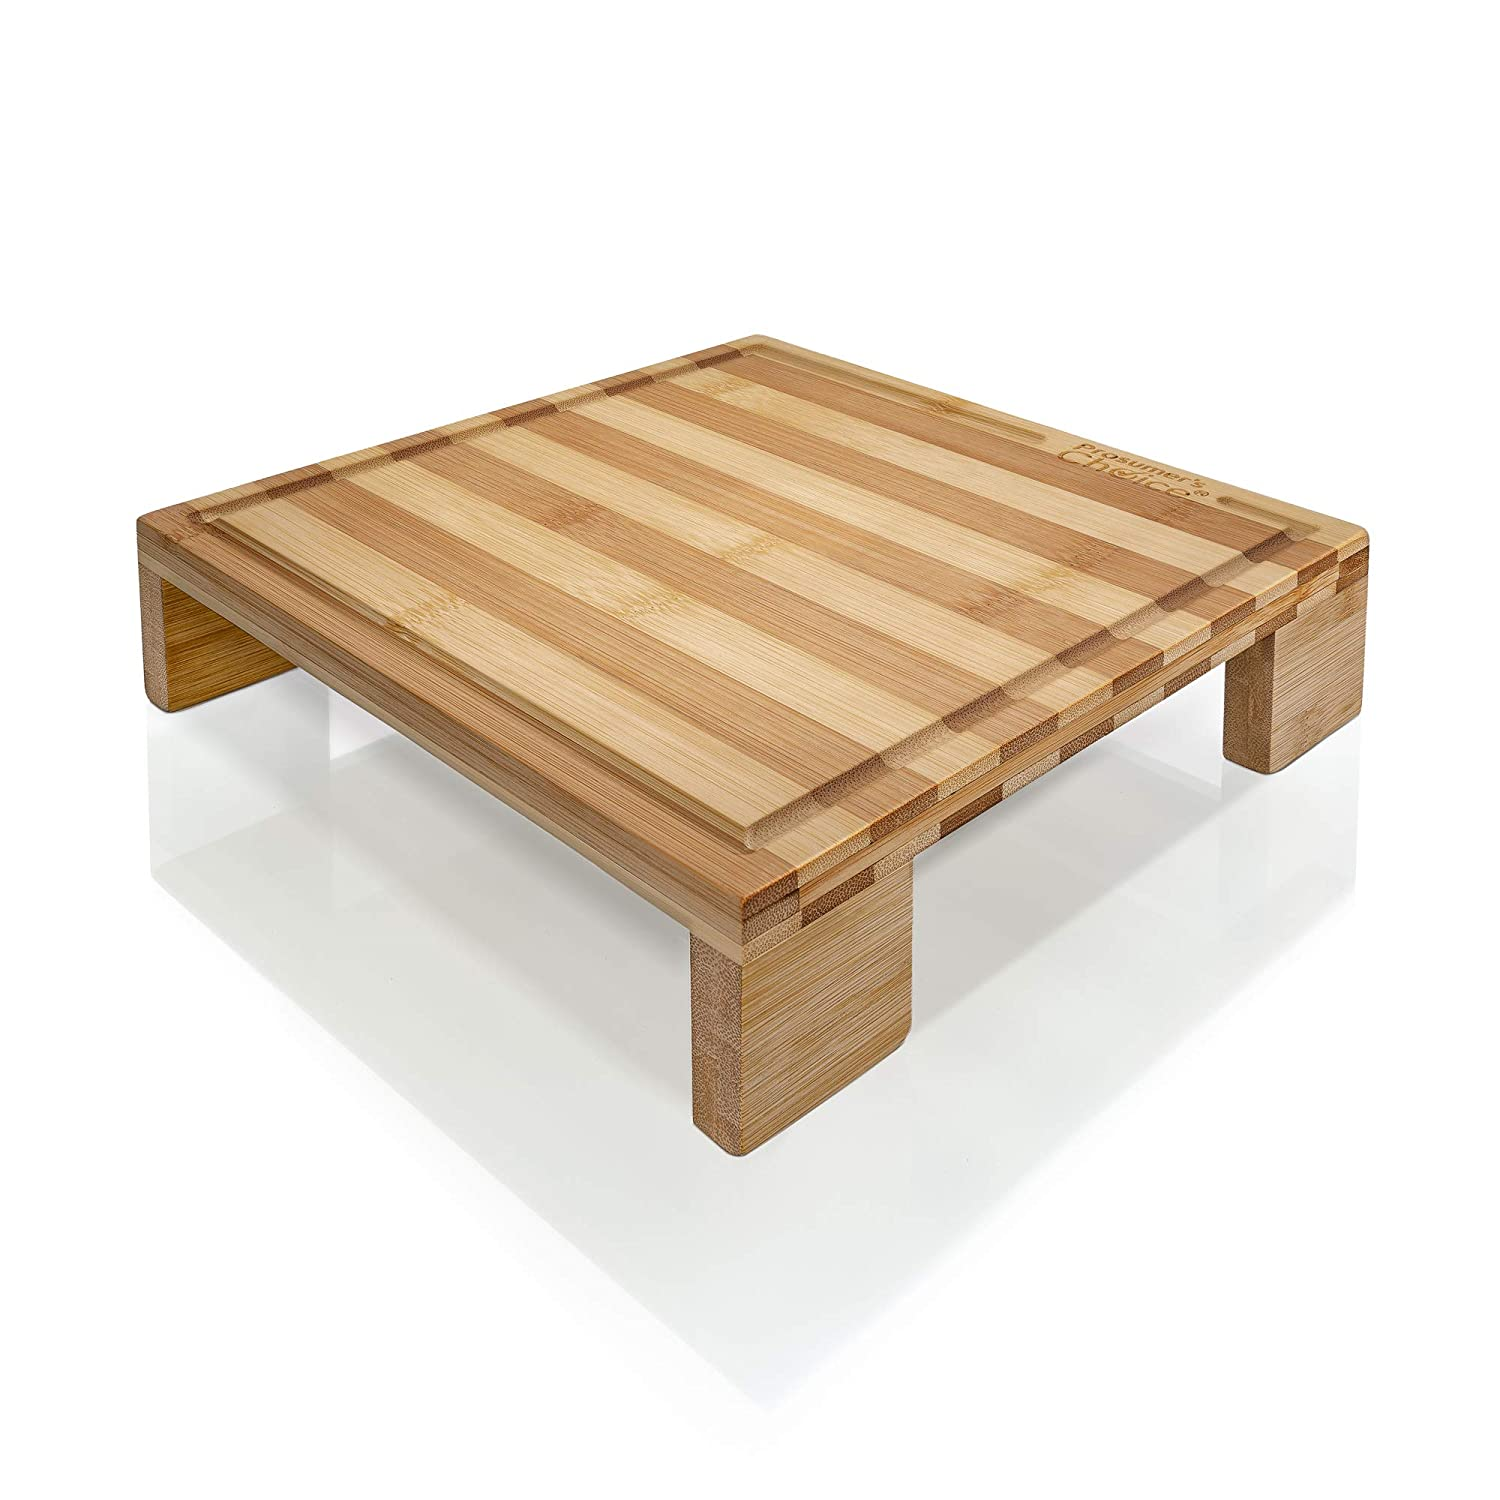 Prosumer's Choice Bamboo Cutting Board and Single Burner Stovetop Cover Cheese Platter